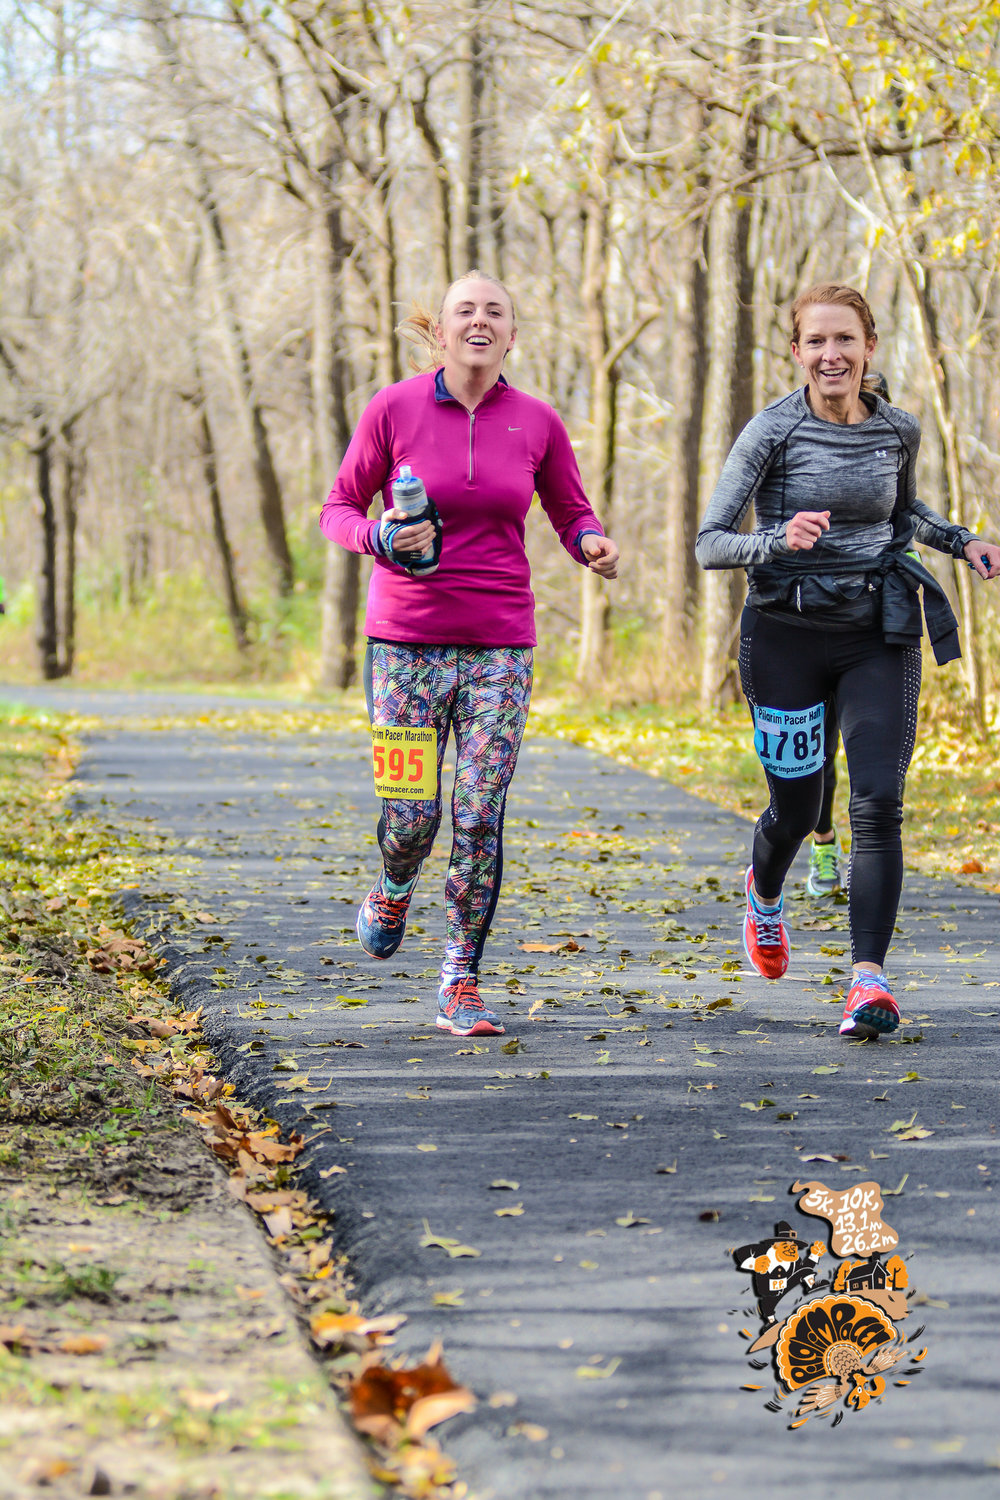 The course was a double out and back. This is on our way in, round two. Me, on the left. The best running partner in the world, on the right. Smile through the pain, baby! Photo: Mile 90 Photography